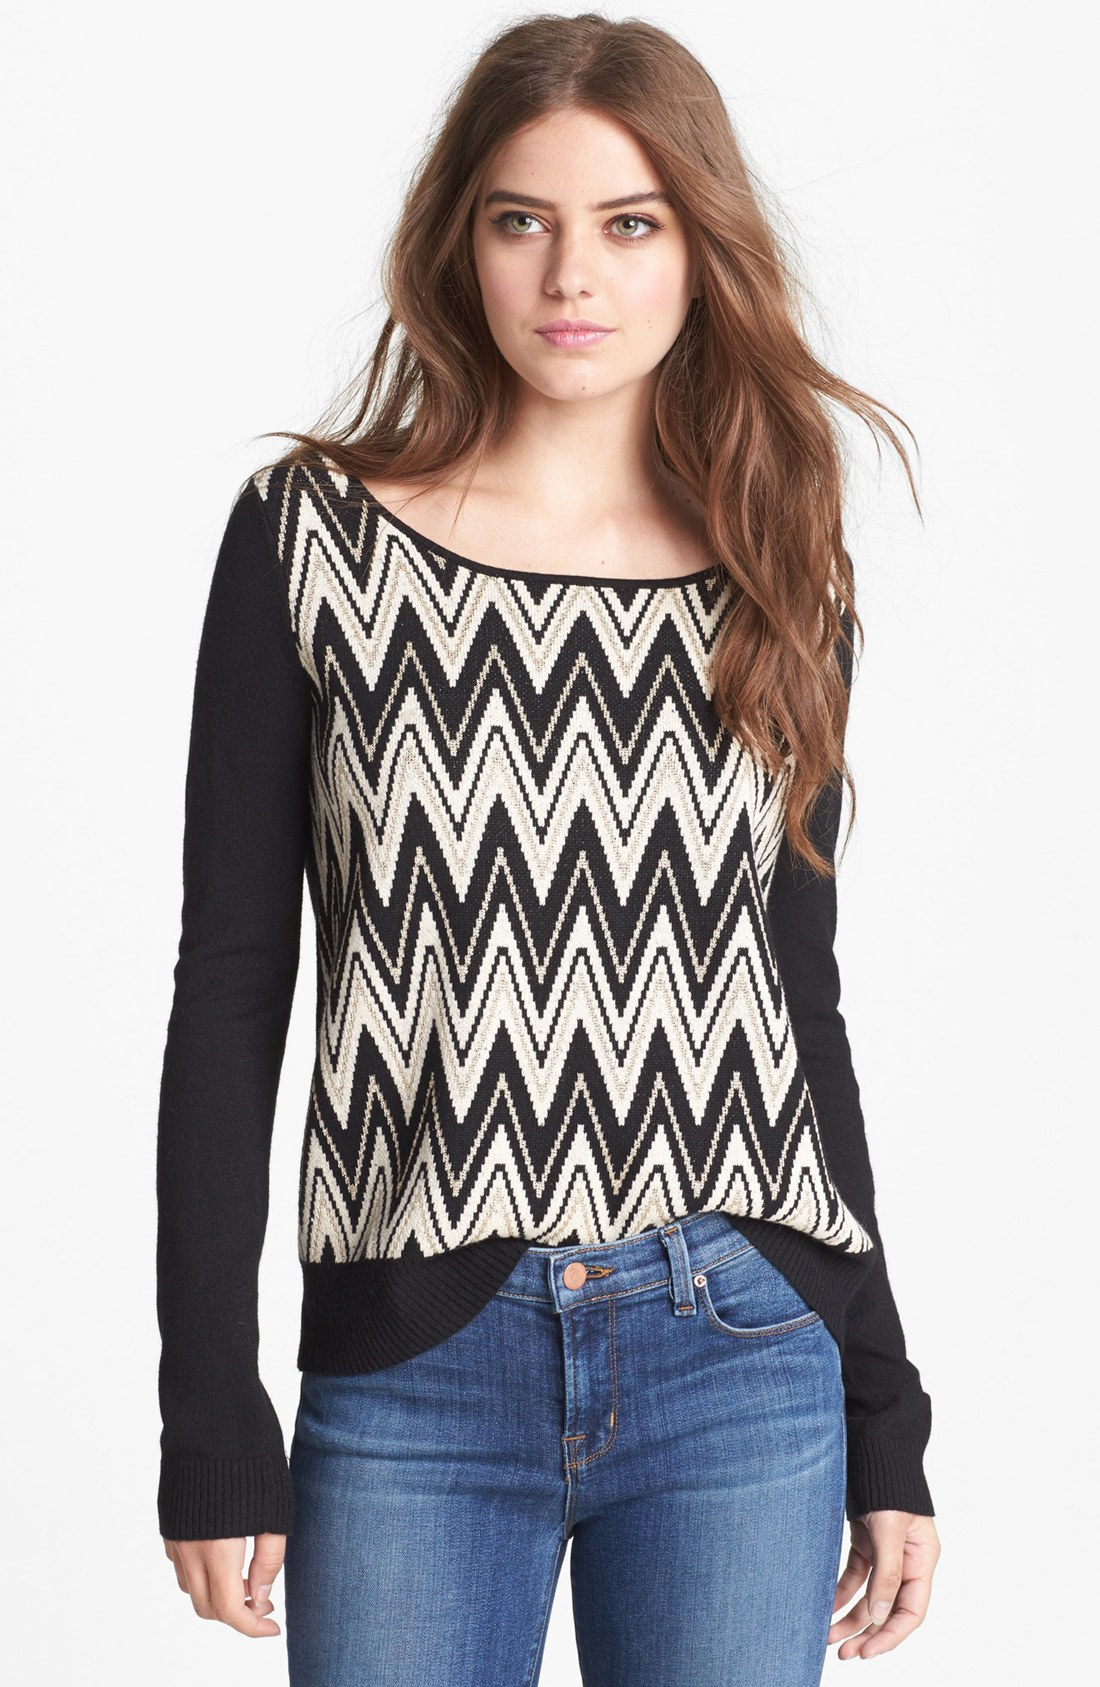 Ella Moss Sweater 40